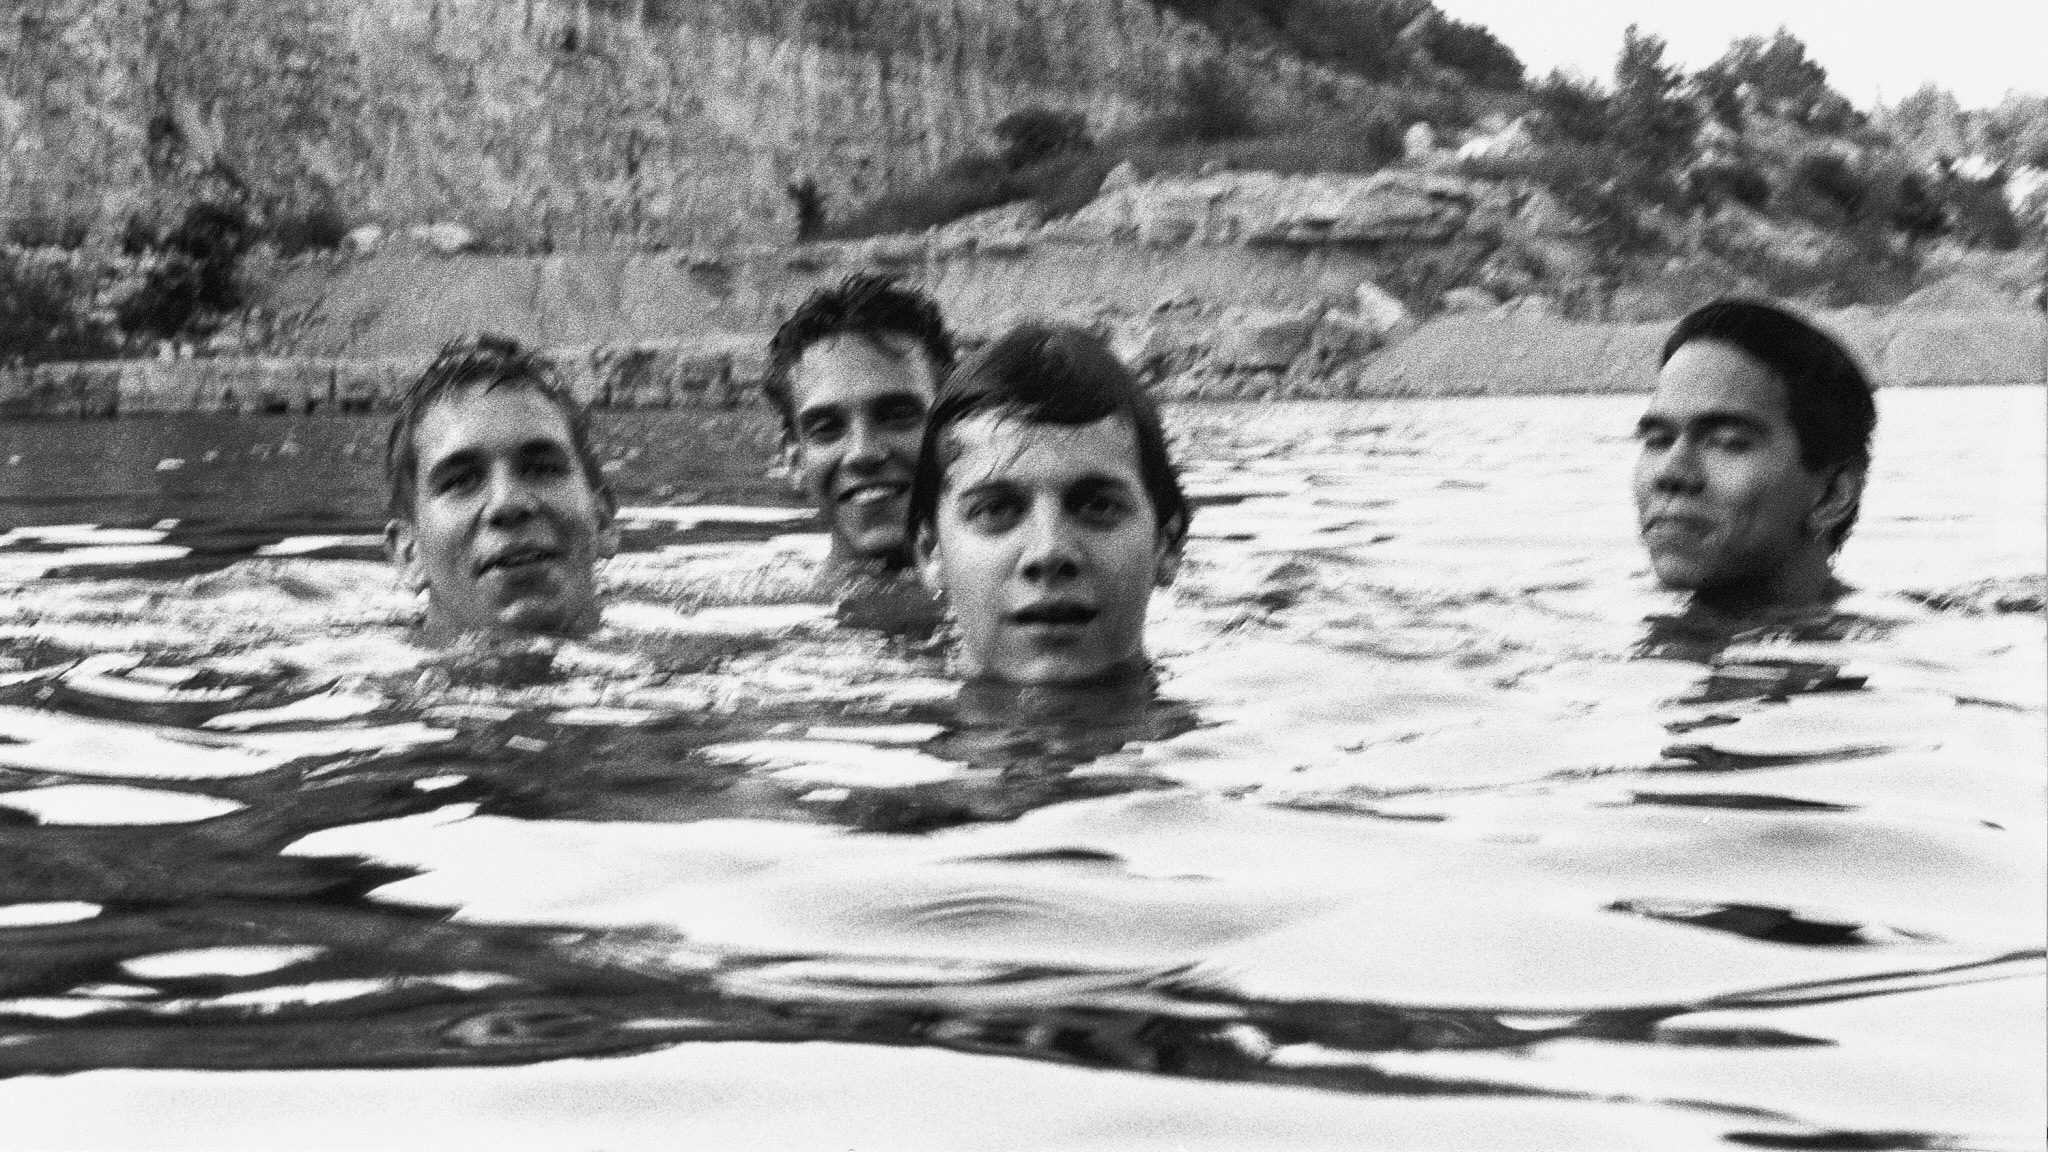 Spiderland cover photo, Will Oldham.